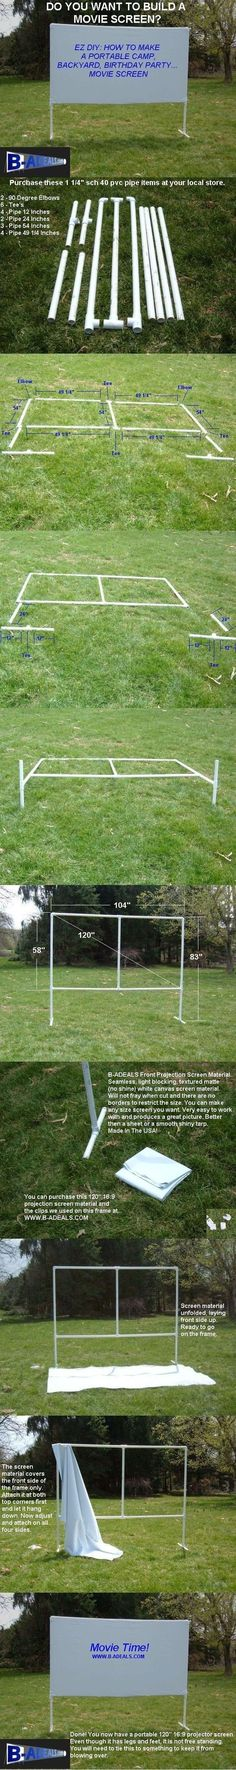 Backyard Movie Theater Outdoor Movie Night. Free DIY Projection Screen Frame Instructions from www.b-aDeals.com